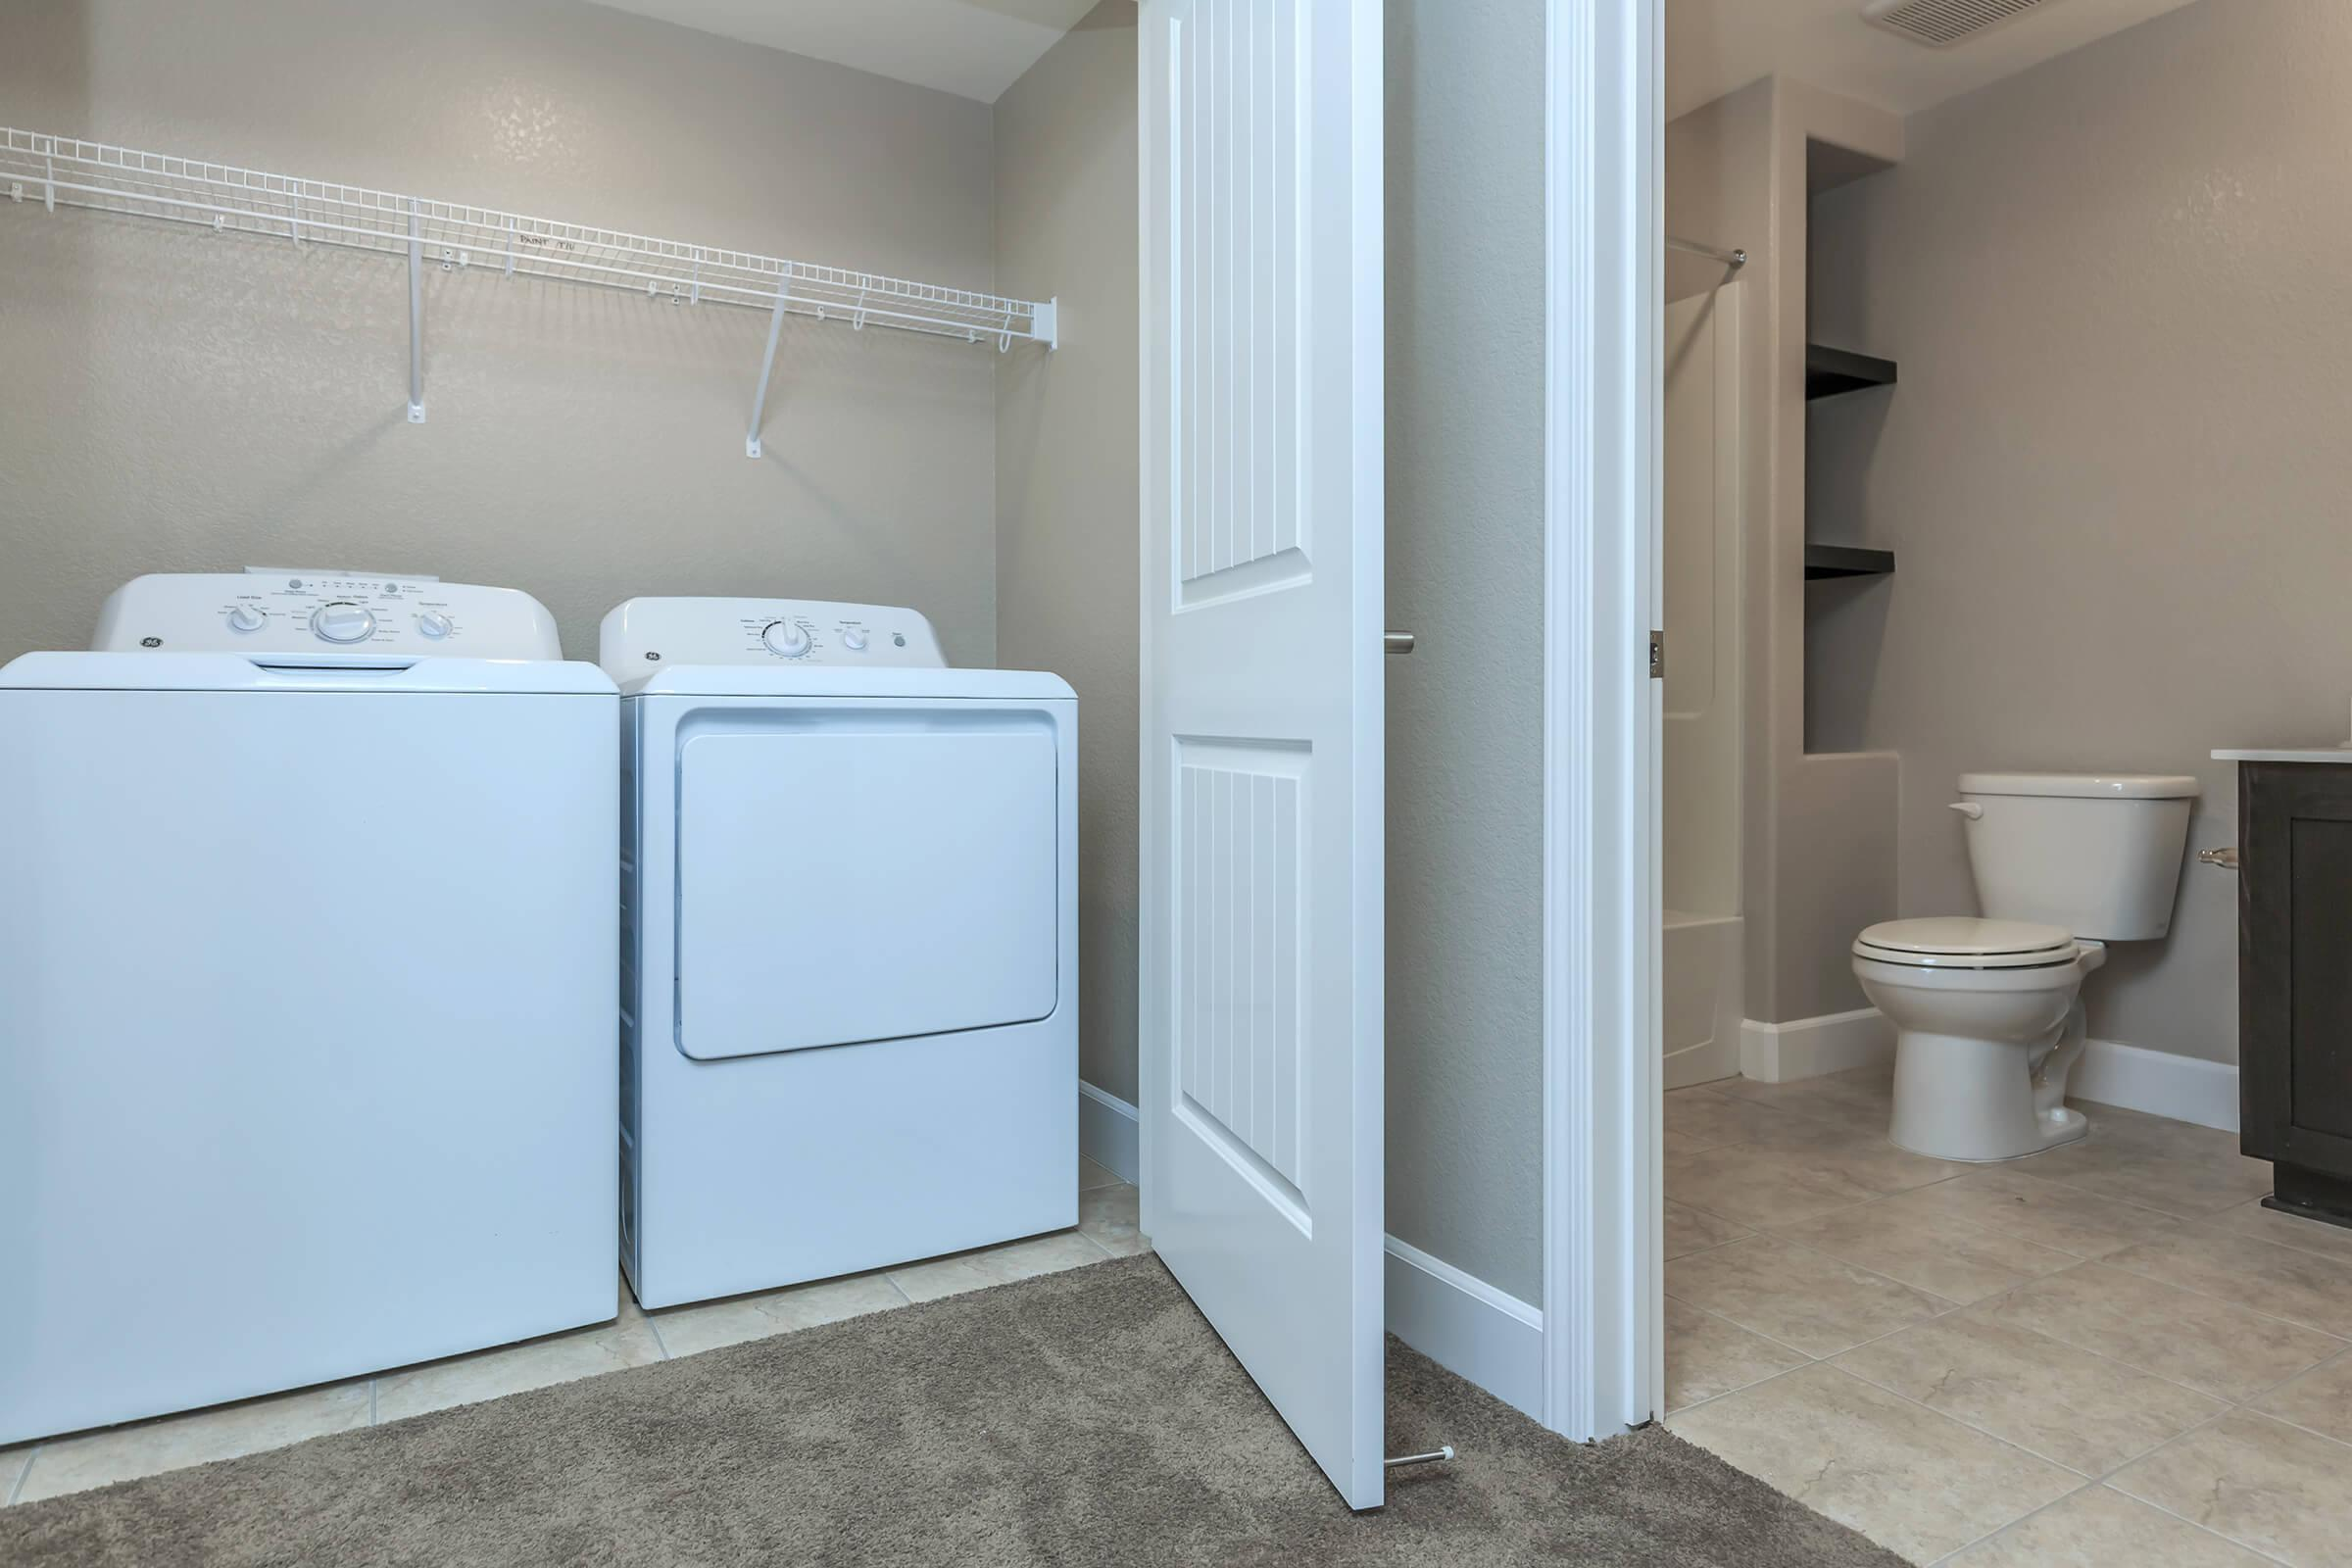 a room with a sink and a refrigerator